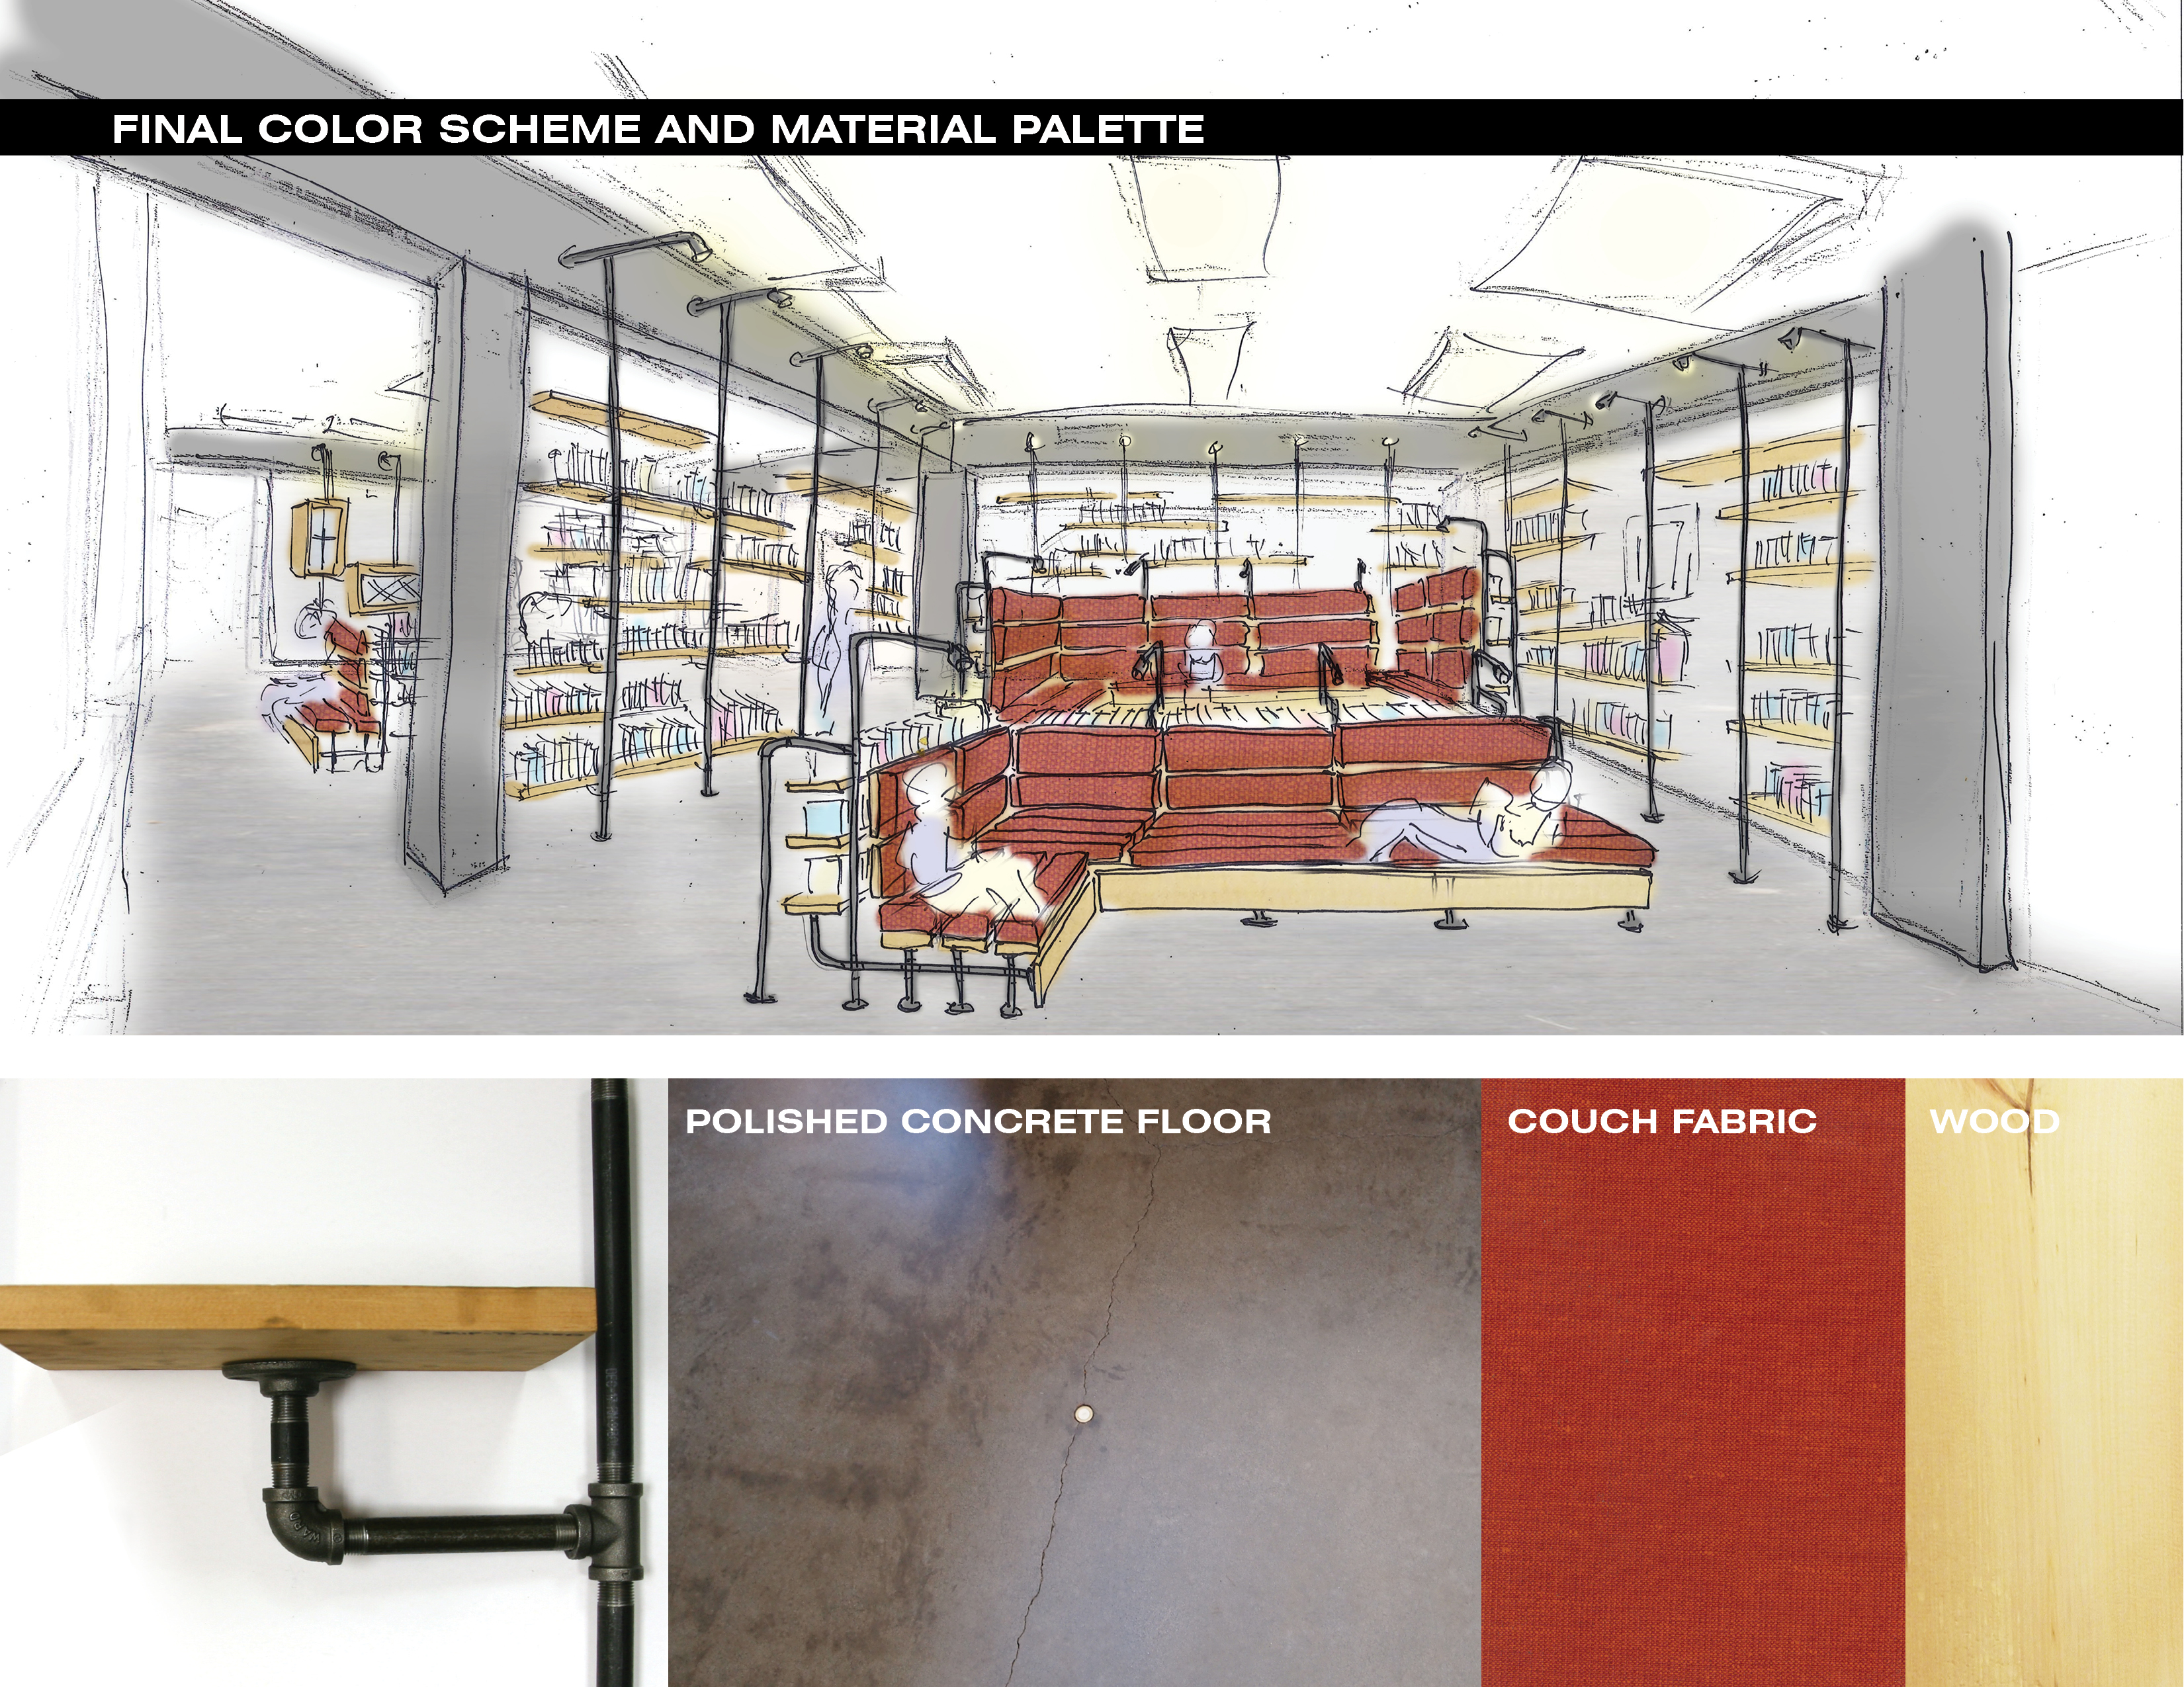 Final color scheme and material palette of Robert Seidey Reading room